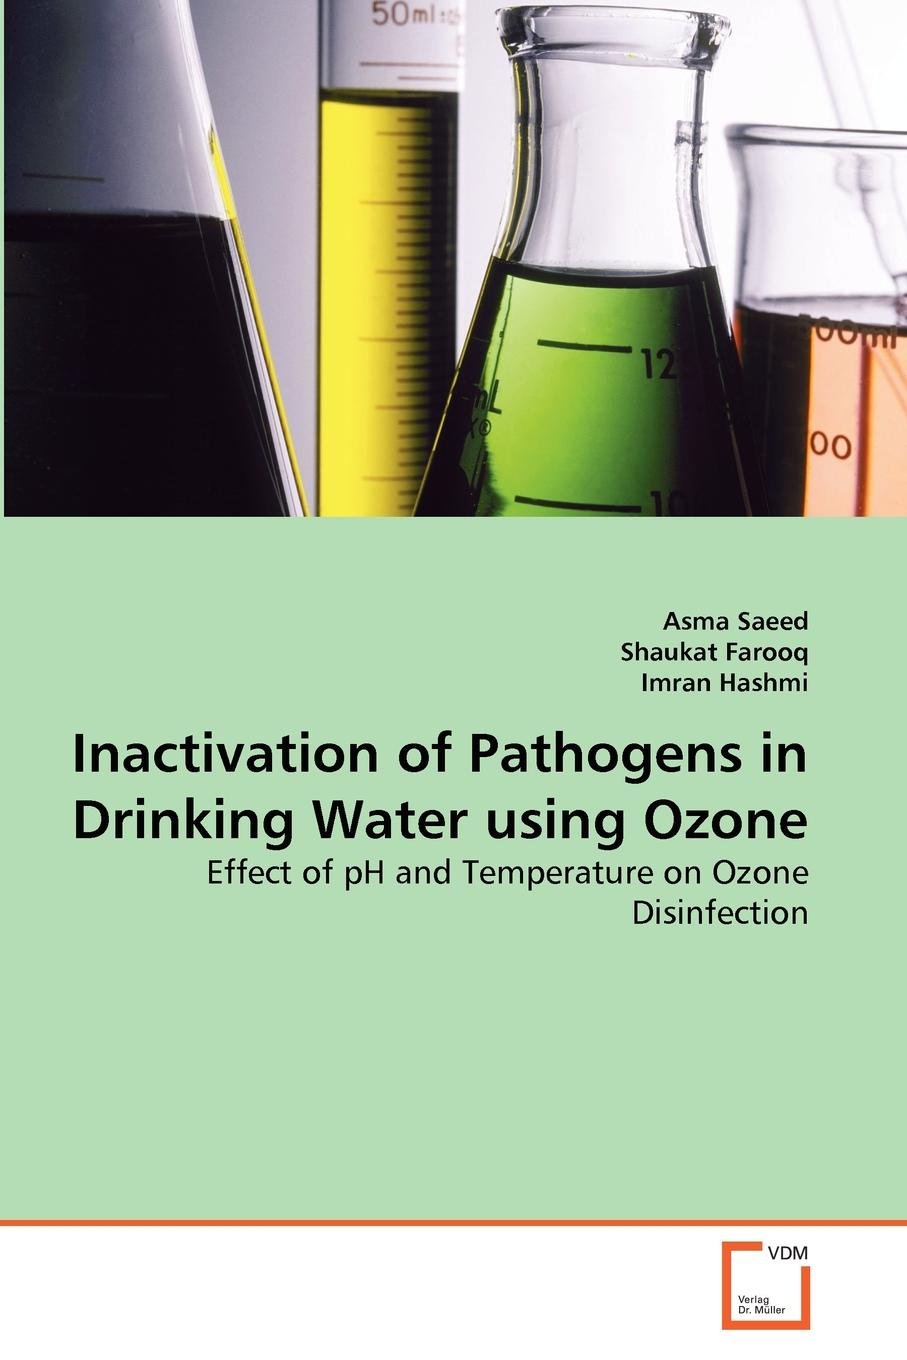 Asma Saeed, Shaukat Farooq, Imran Hashmi Inactivation of Pathogens in Drinking Water using Ozone modern multicolor spray painting kitchen purification faucet drinking tap pure water faucet dual handle hot and cold mixer taps